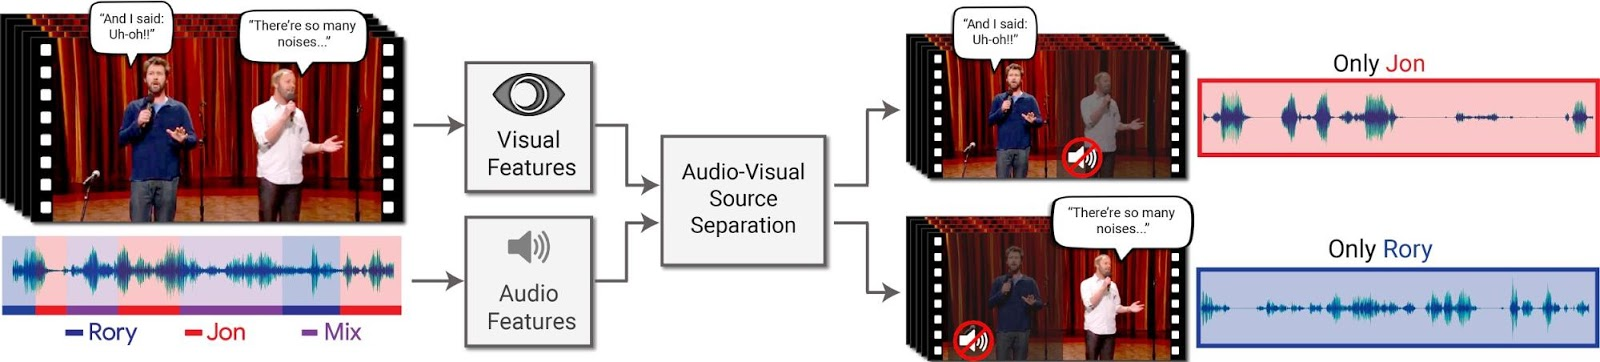 Google AI Blog: Looking to Listen: Audio-Visual Speech